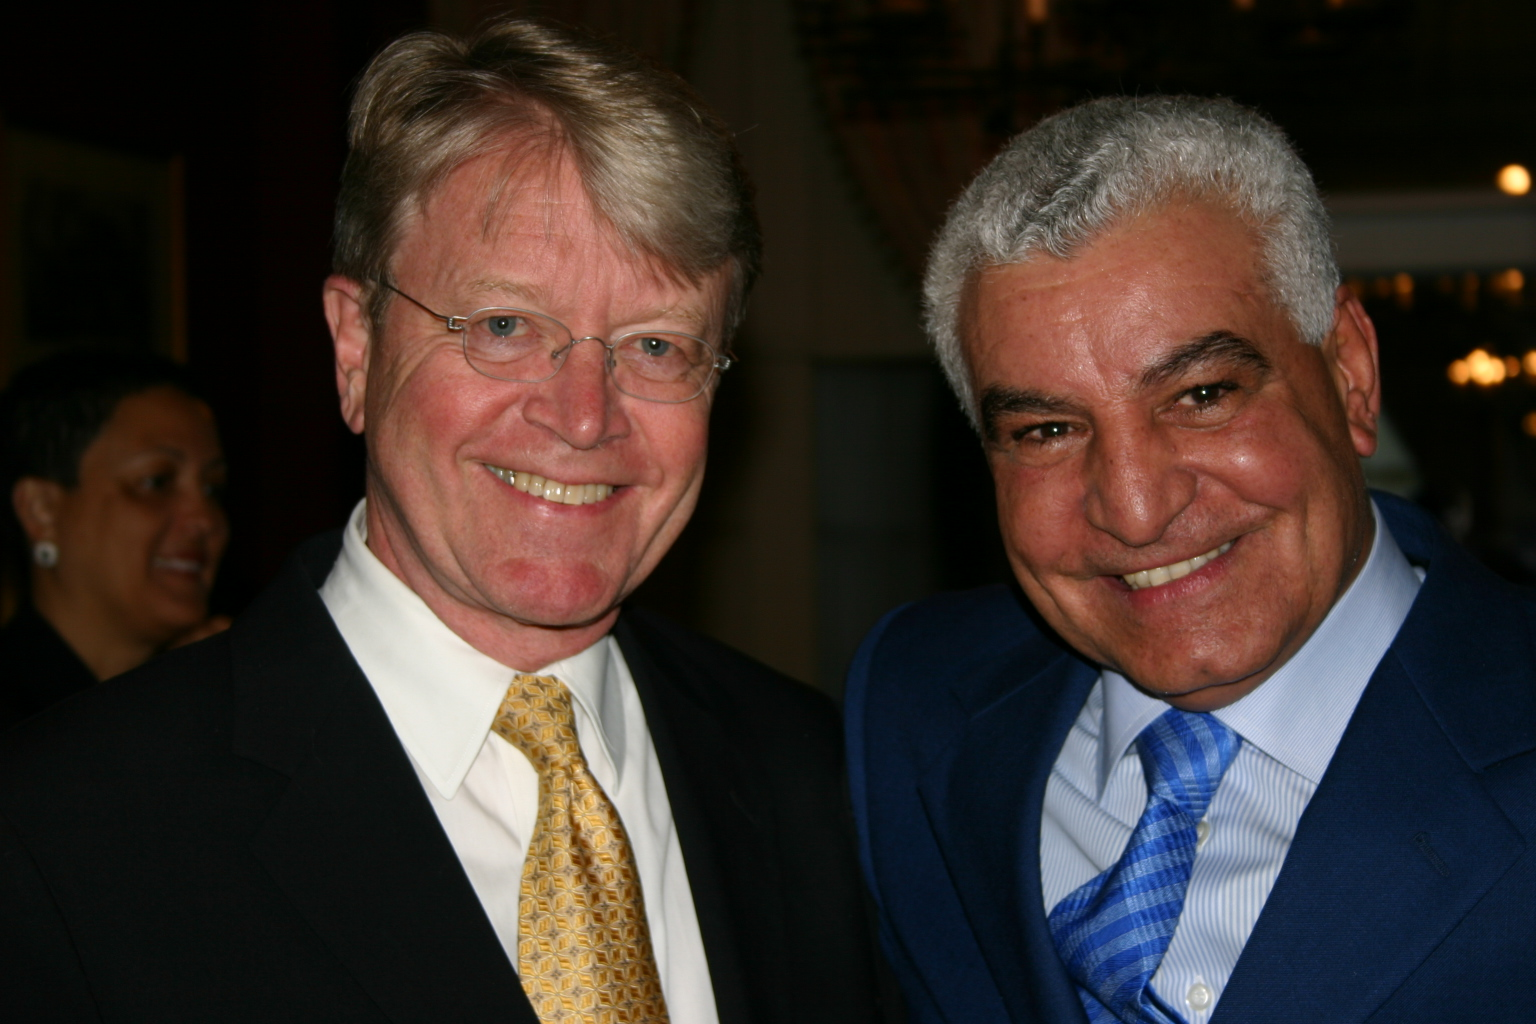 With the former Egyptian Minister of State for Antiquities Affairs, Zahi Hawass